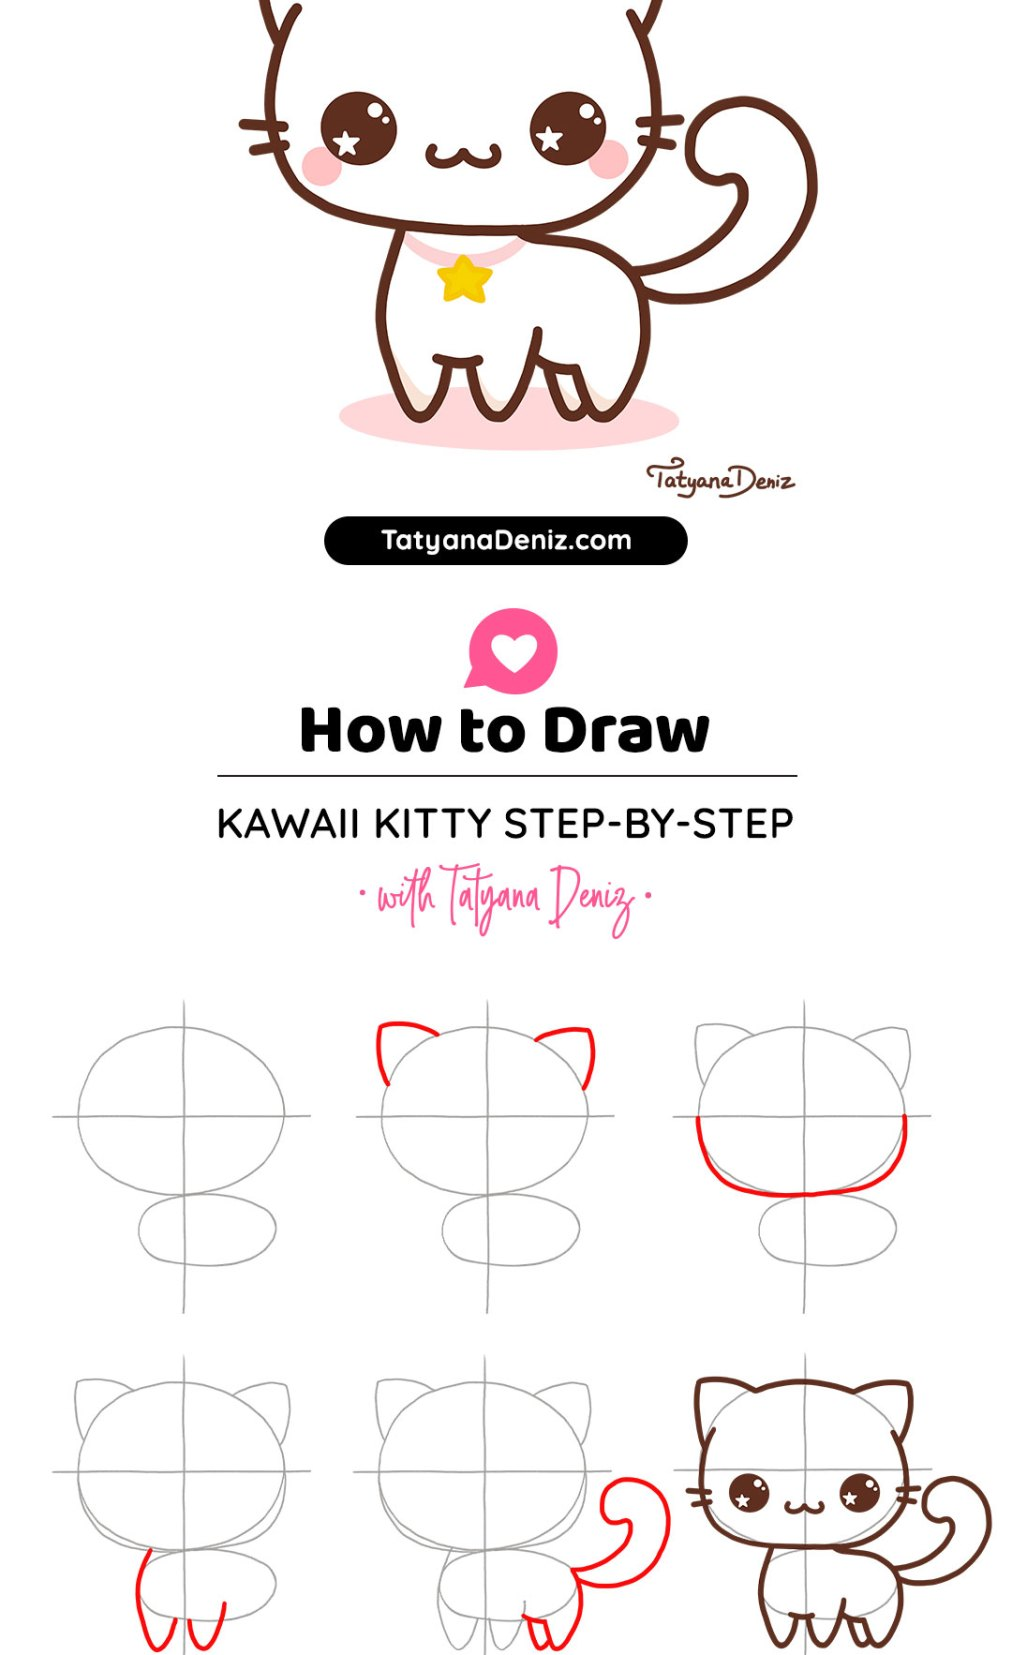 How to draw kawaii cat drawing tutorial